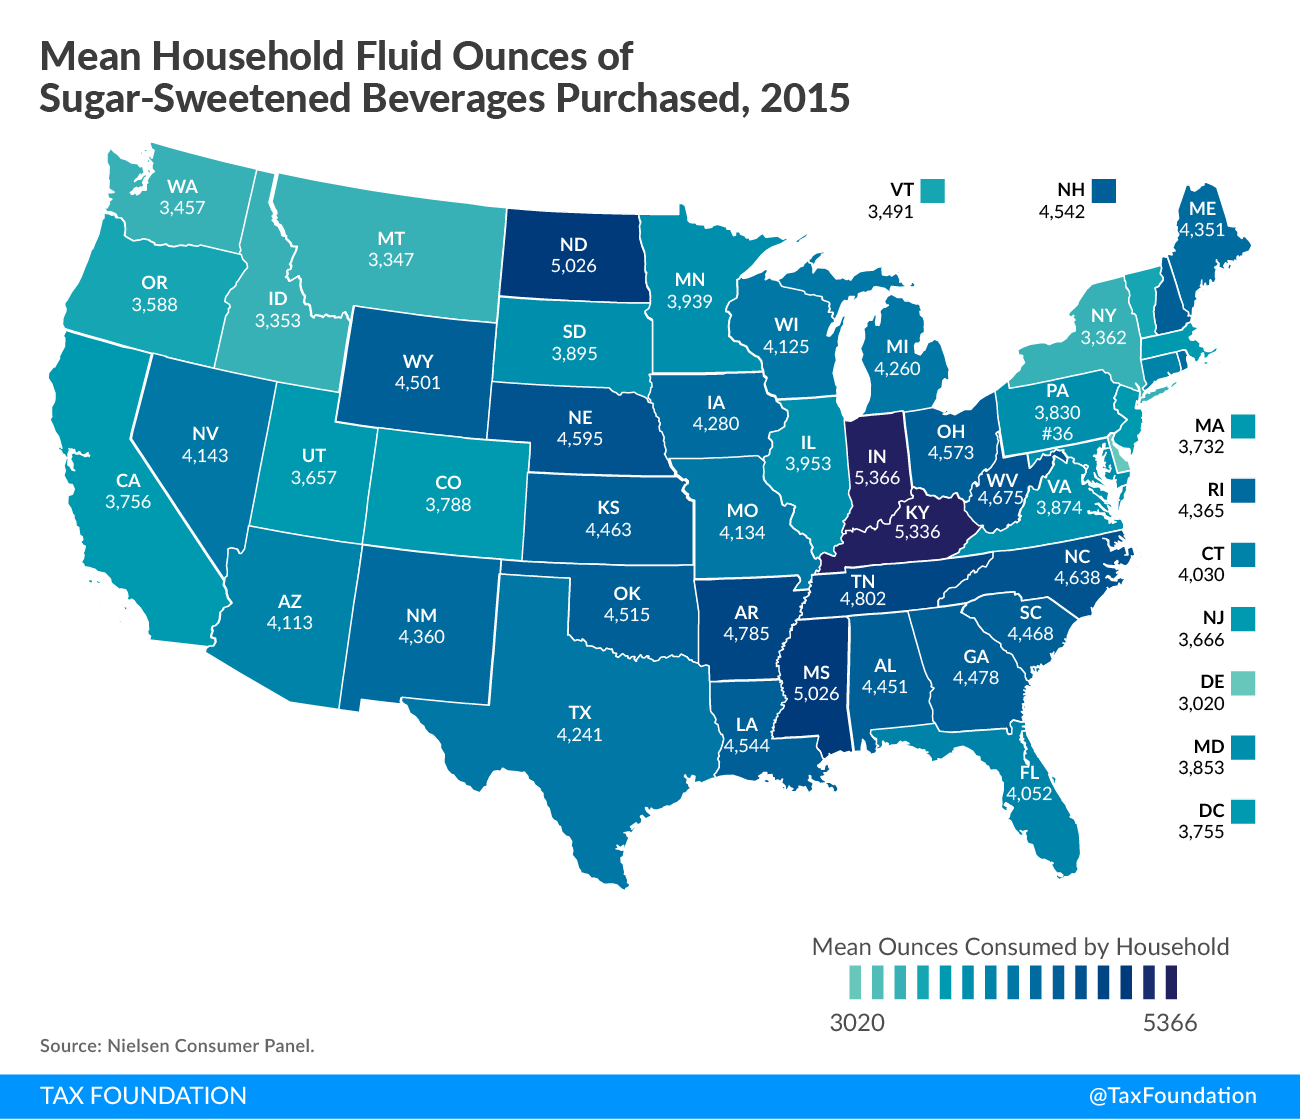 Mean Household Fluid Ounces of Sugar-Sweetened Beverages Purchased Map